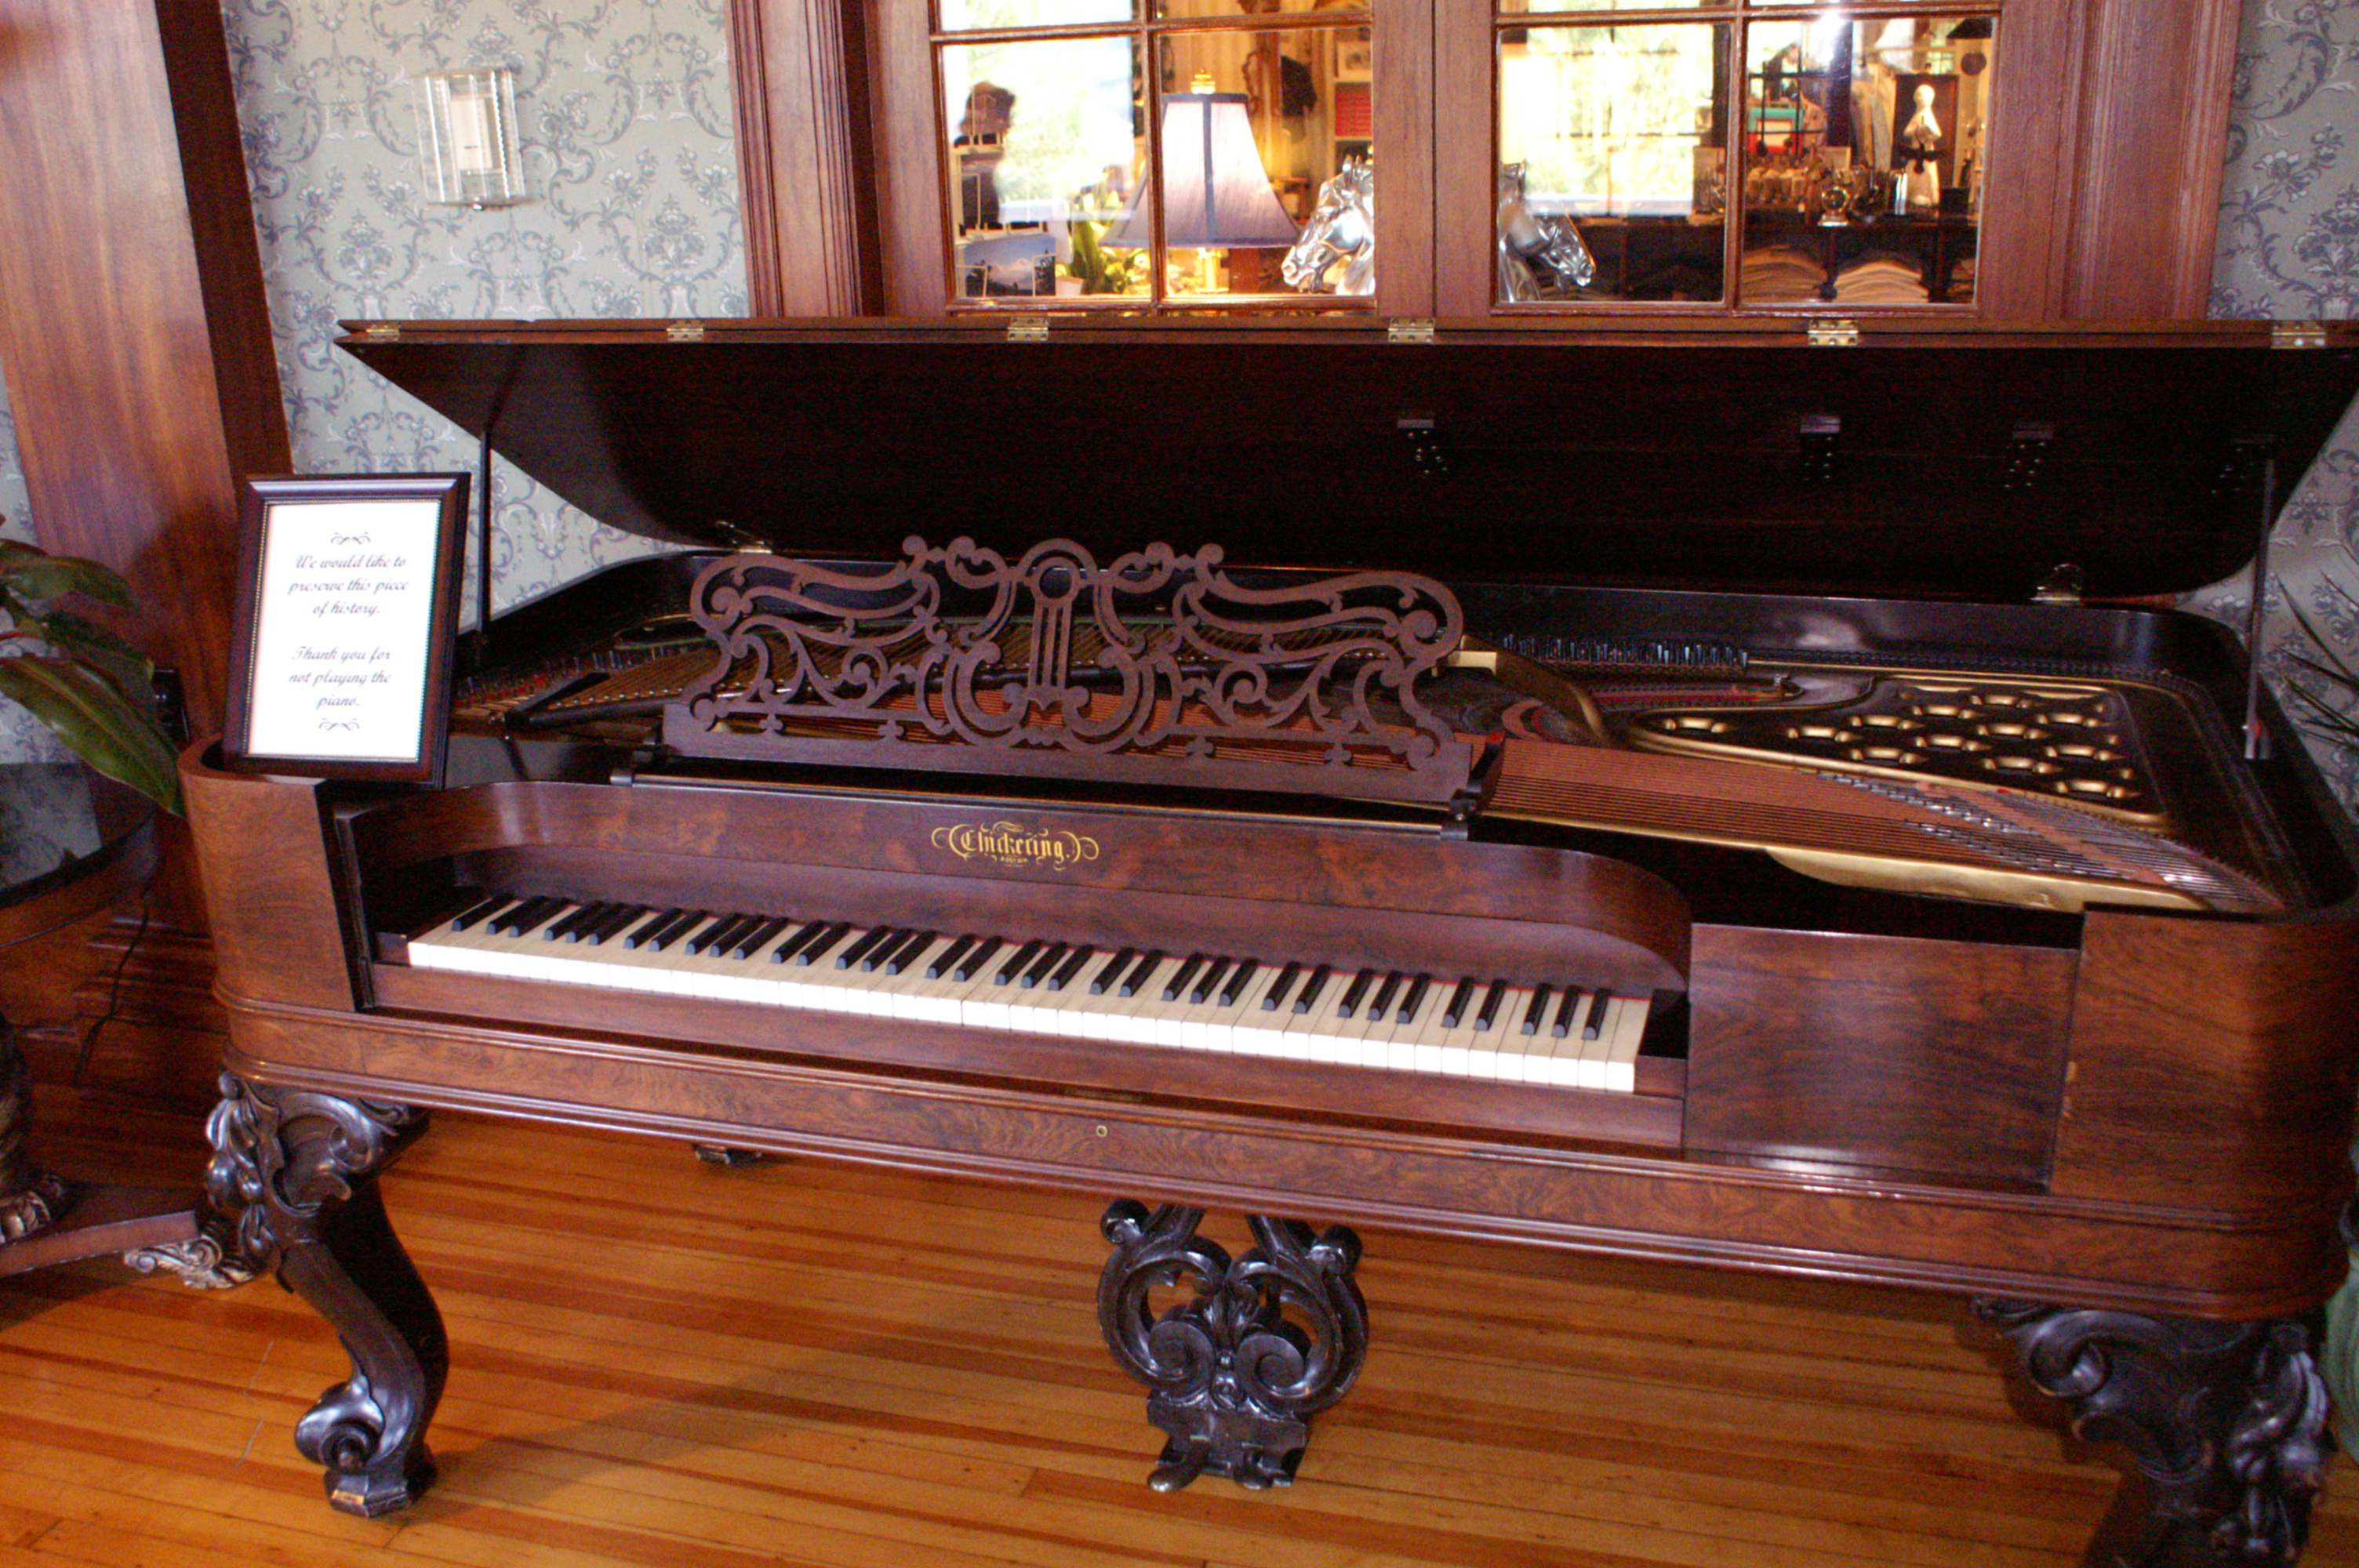 Estes Park Co >> File:Antique Chickering Piano, Stanley Hotel.jpg - Wikimedia Commons